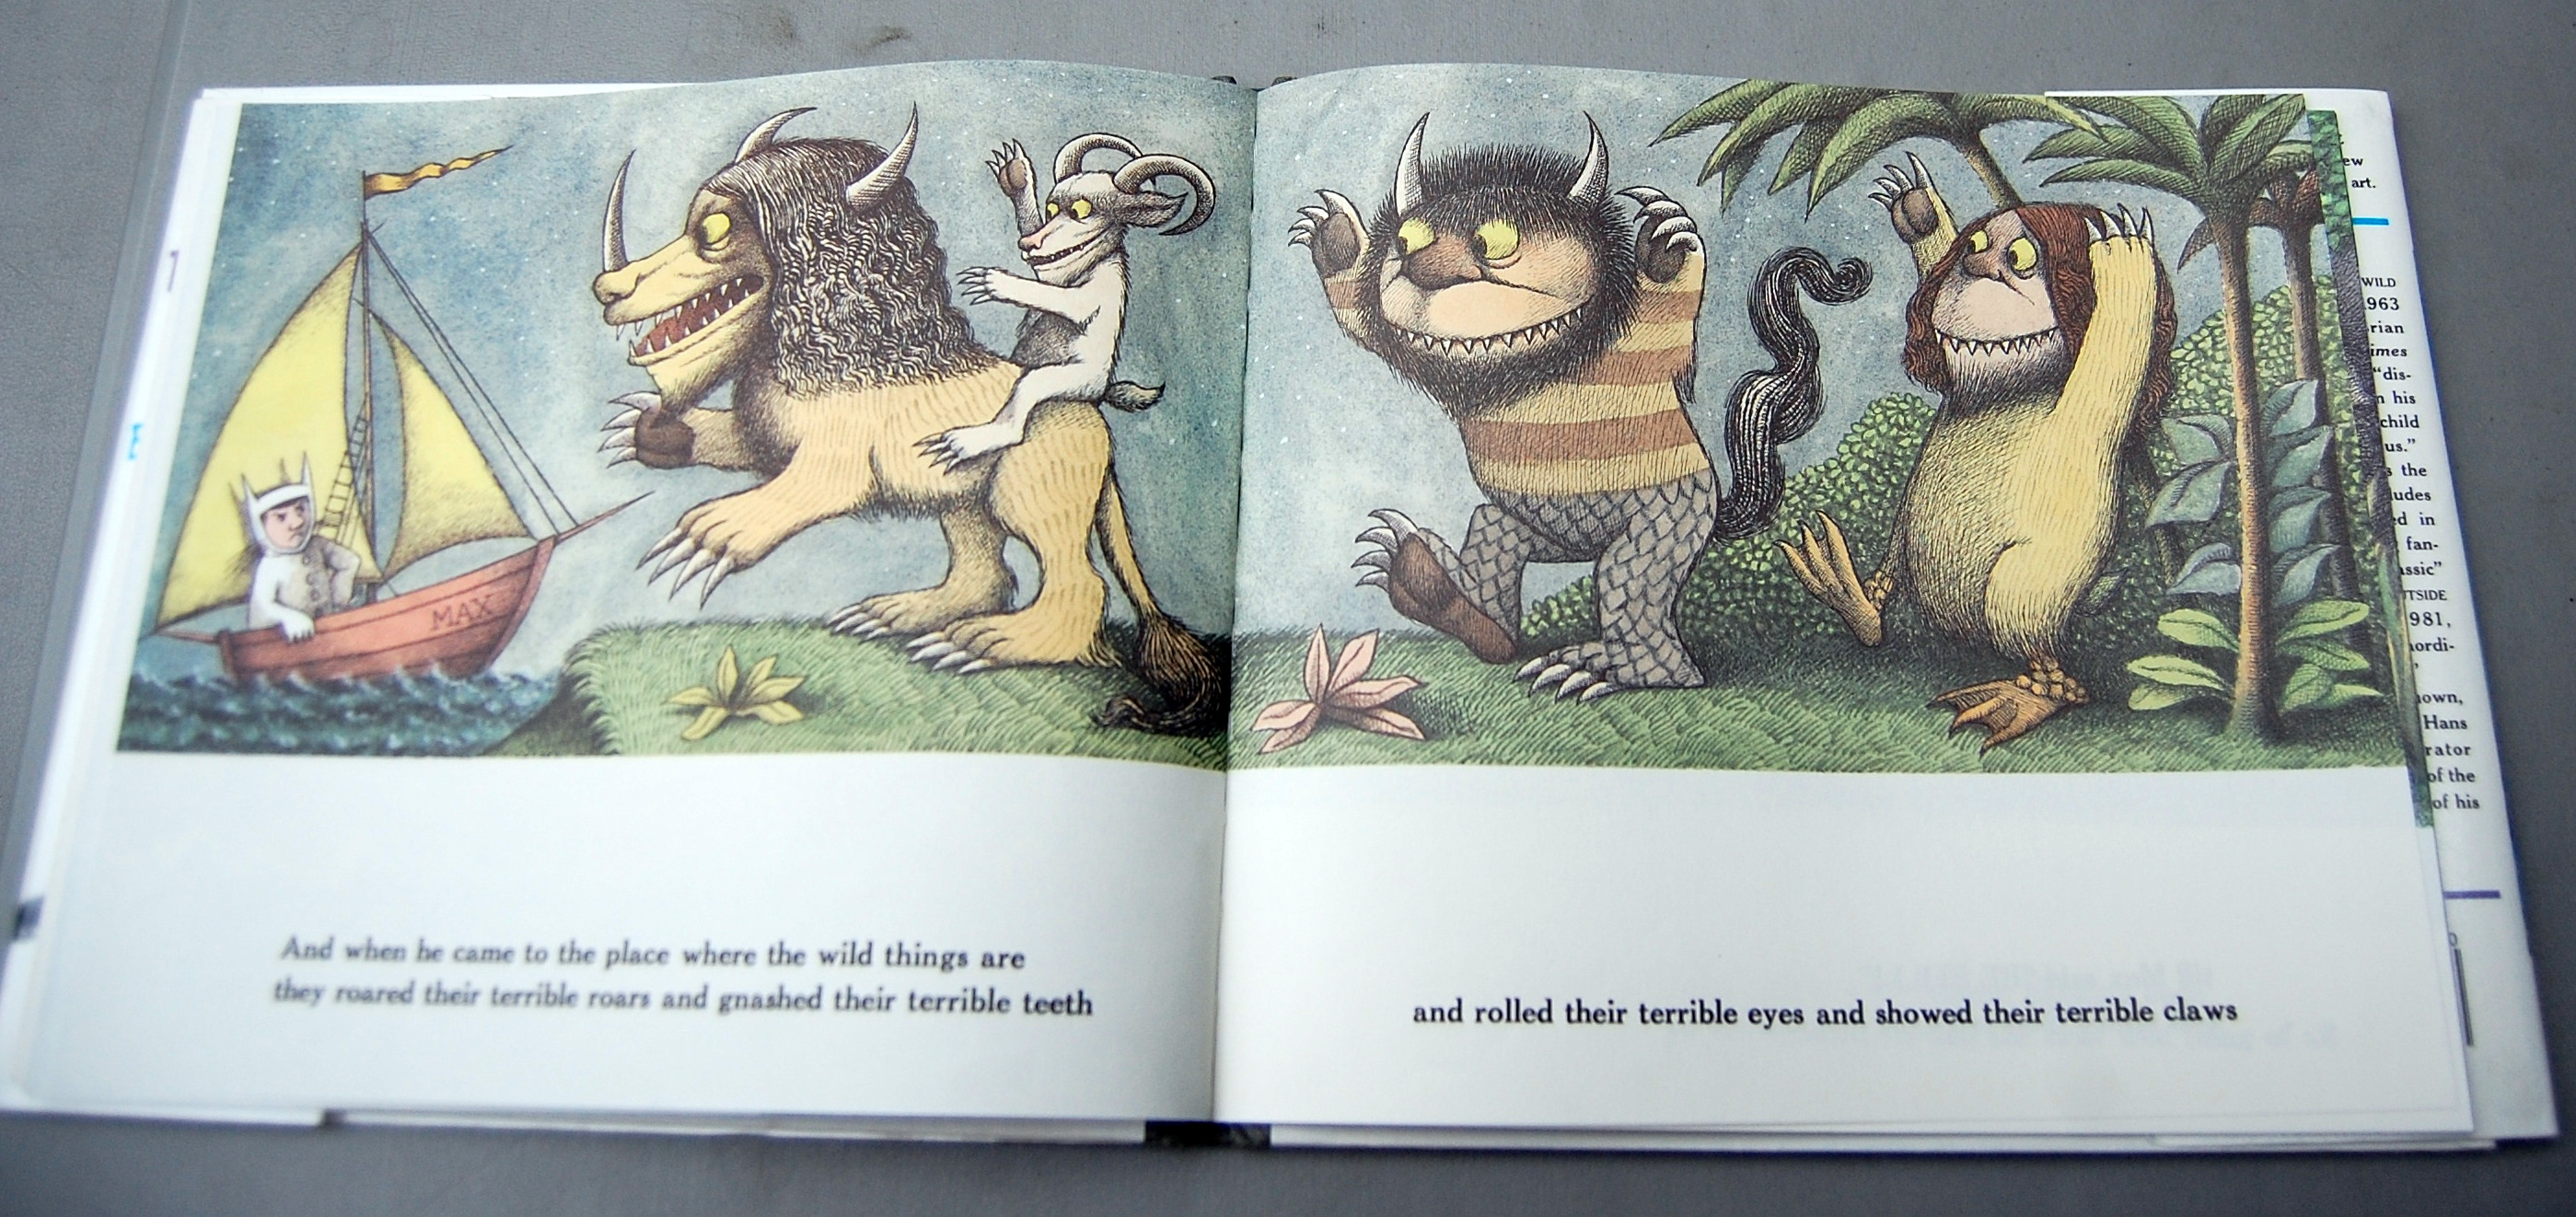 Where The Wild Things Are Book Boat 15315 | LOADTVE